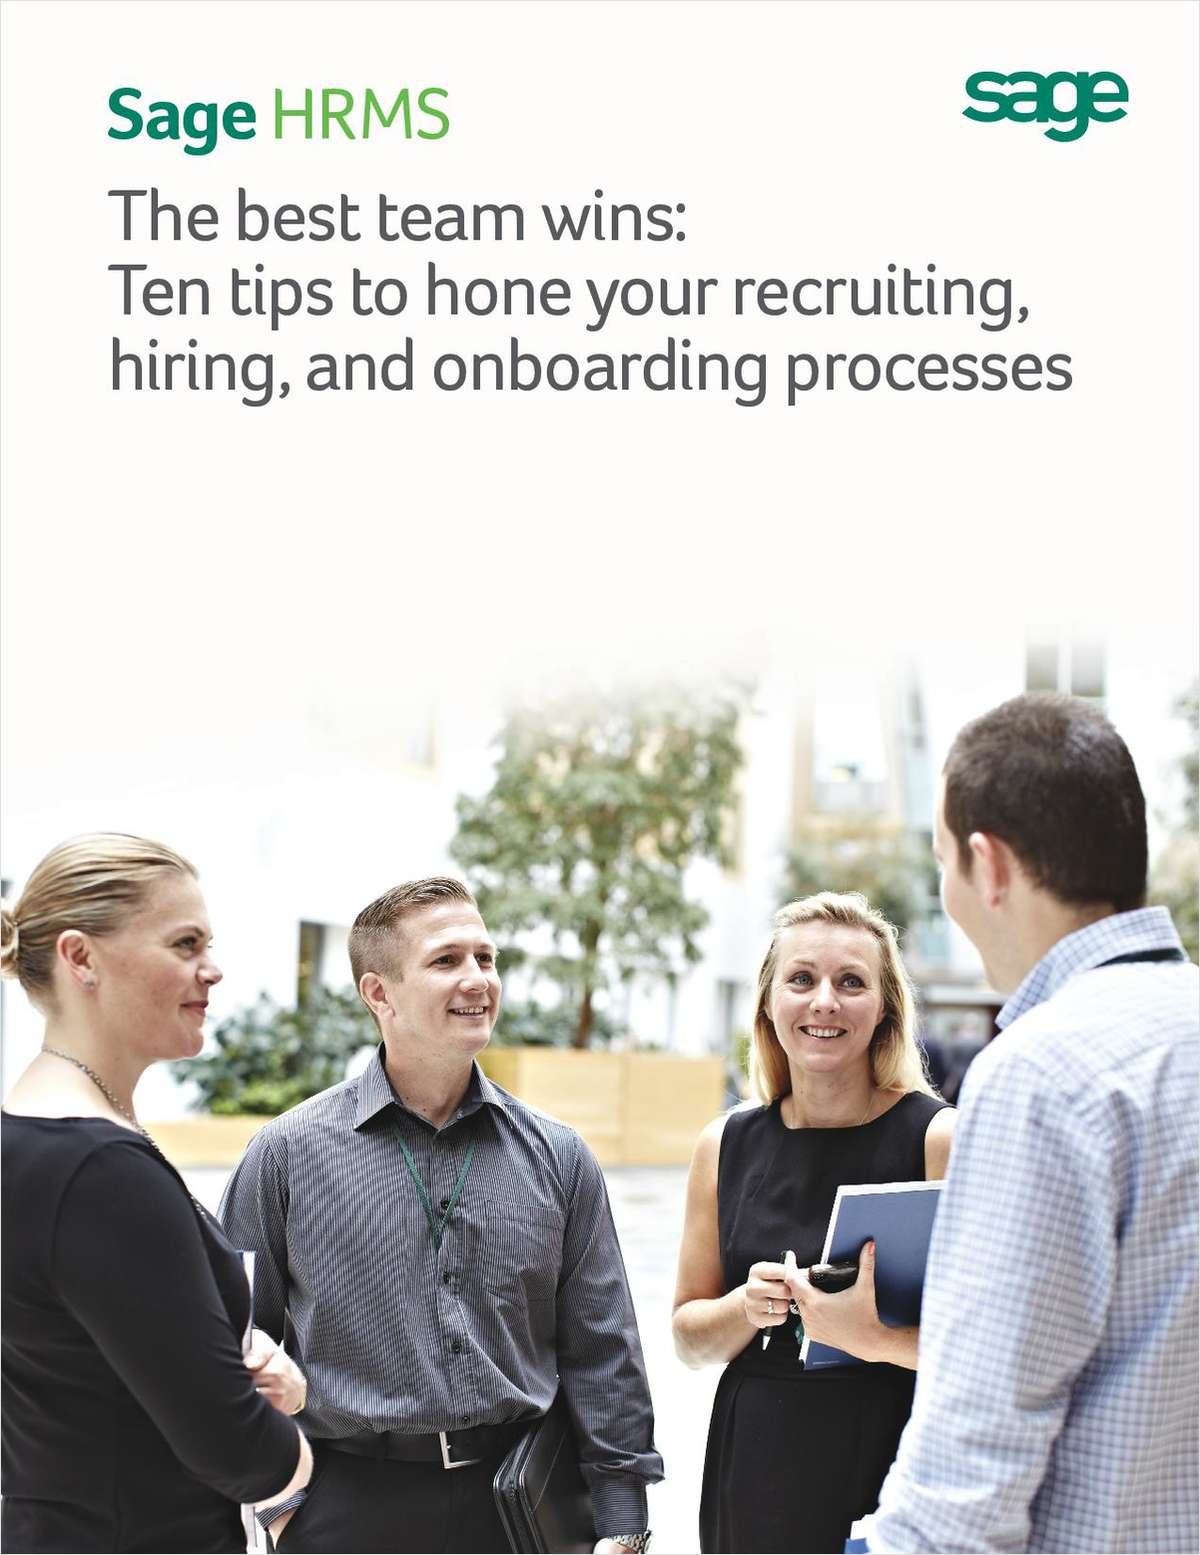 The Best Team Wins: Ten Tips to Hone Your Recruiting, Hiring, and Onboarding Processes